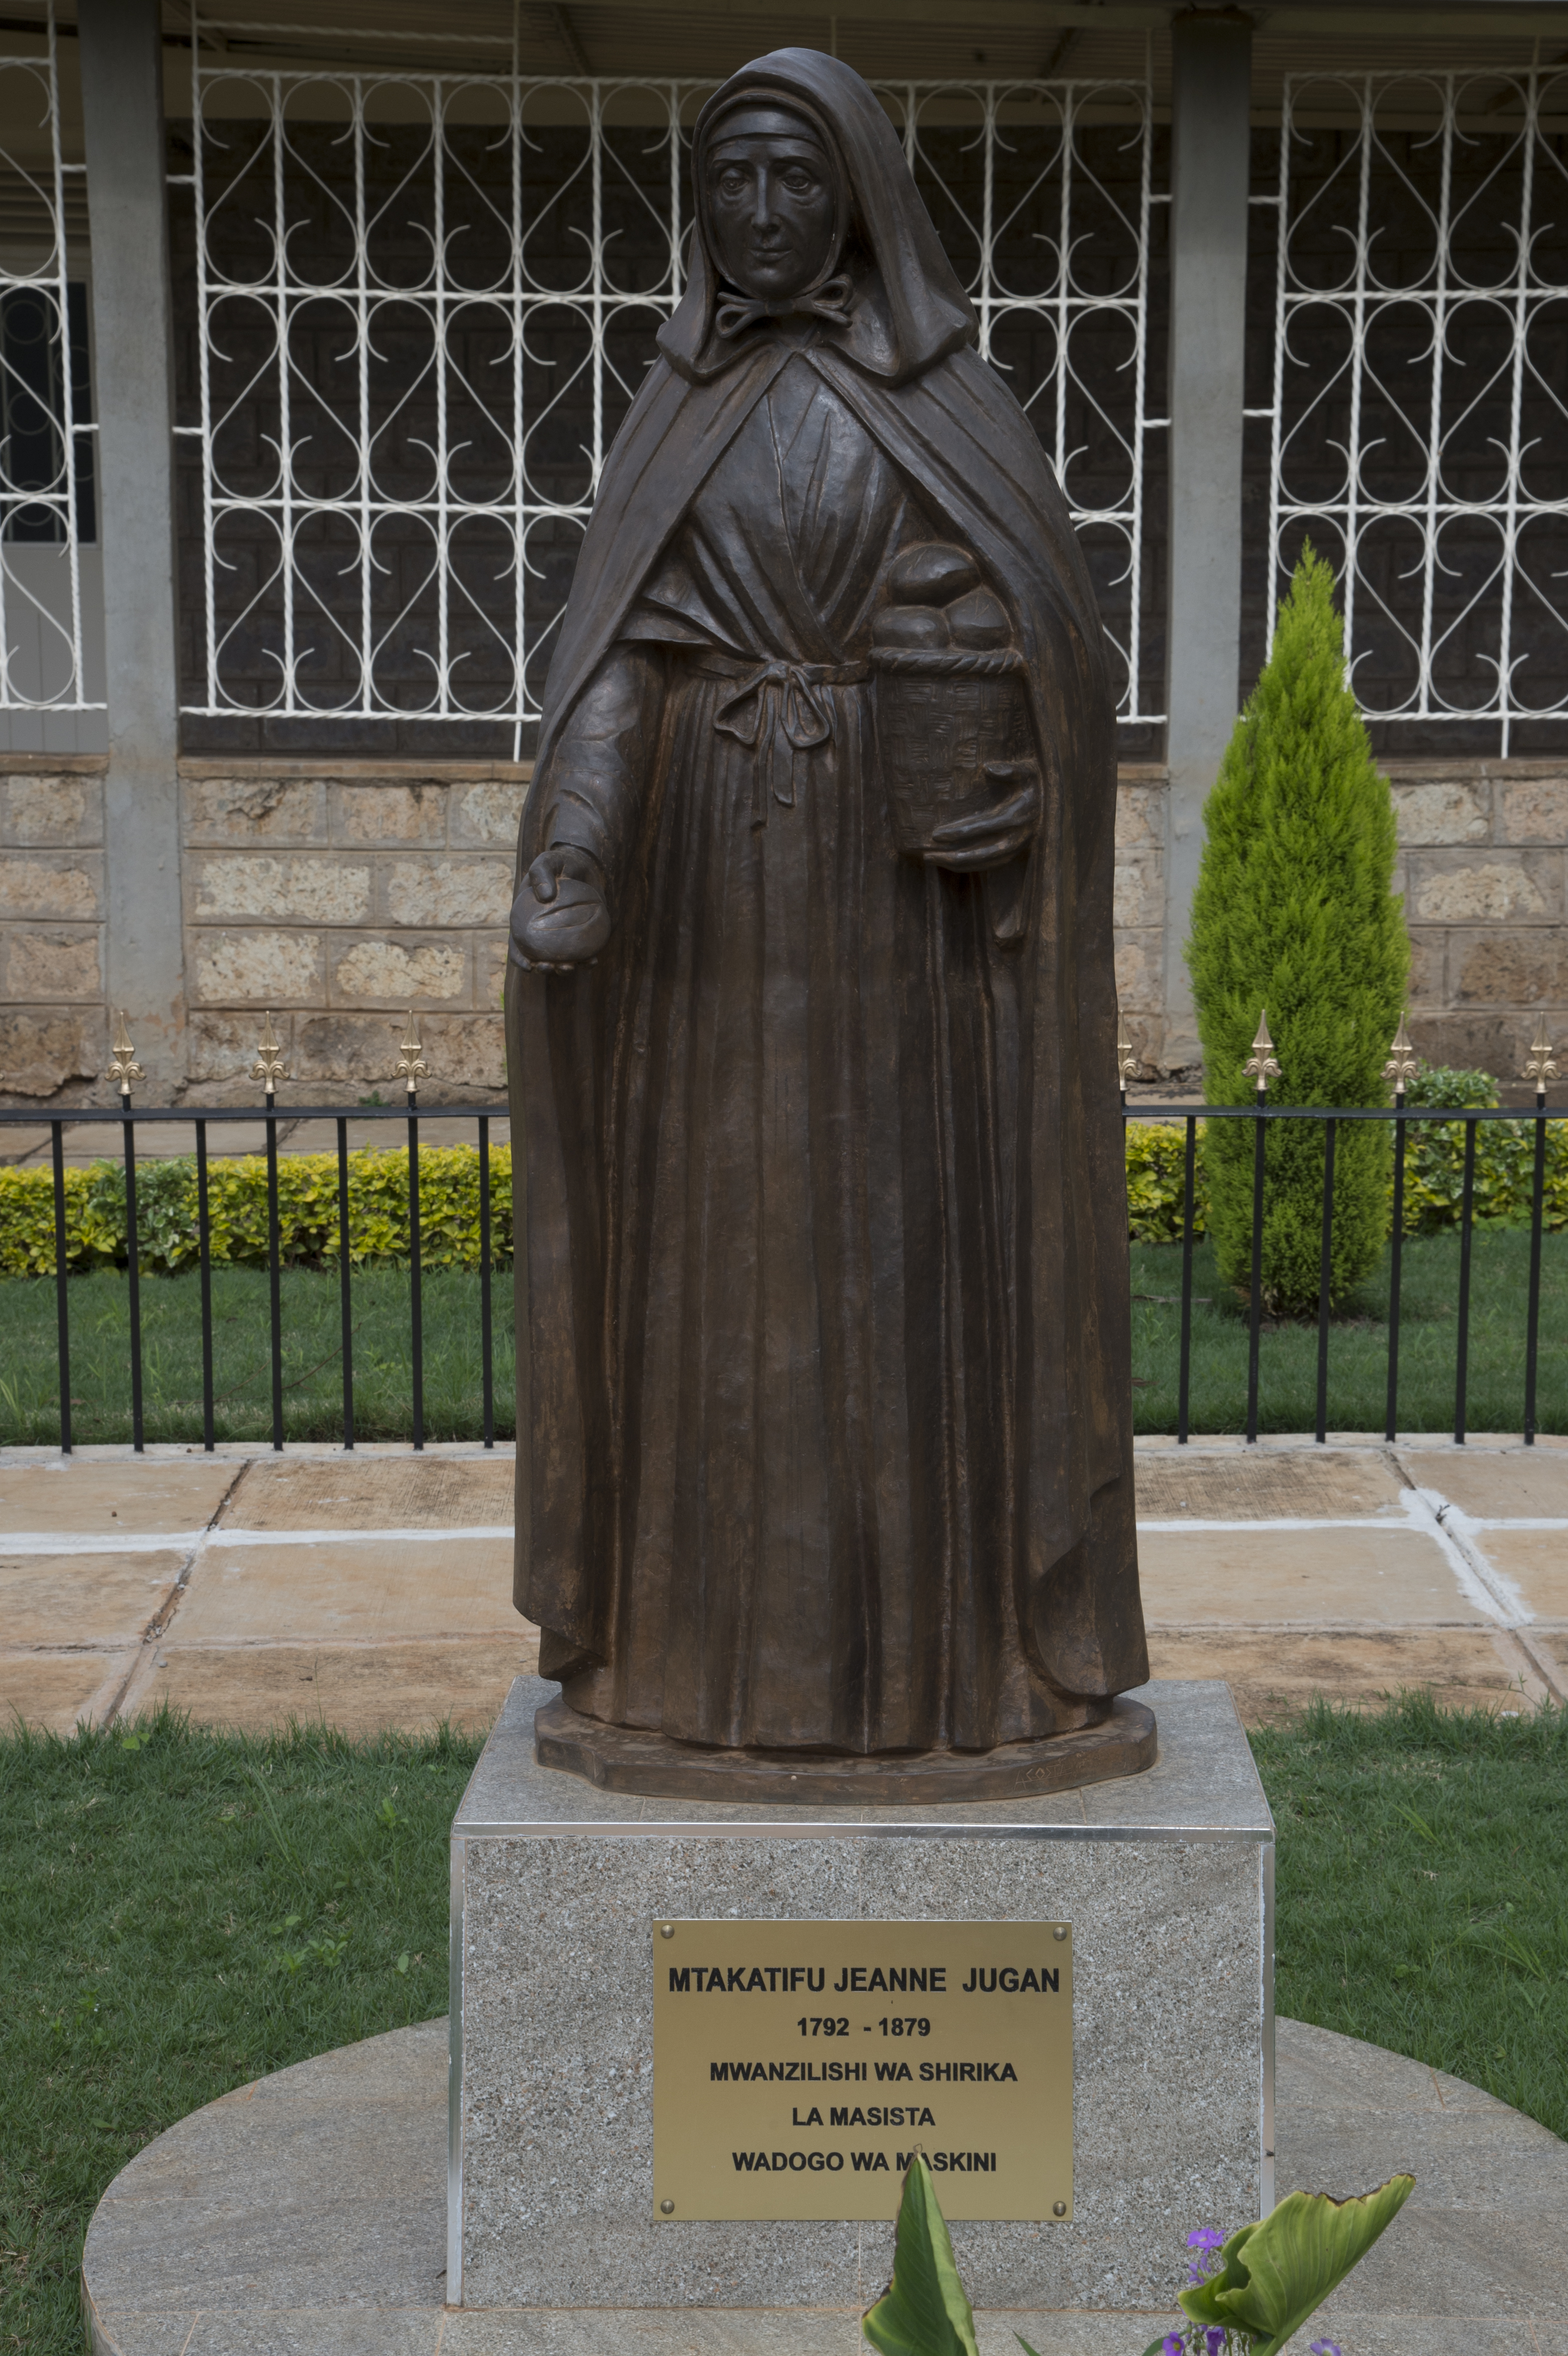 A statue of Saint Jeanne Jugan rests in the courtyard of Nyumba Ya Wazee, or Home of the Elderly, May 9, 2016, in Nairobi, Kenya. Jugan was the foundress of the Little Sisters of the Poor, an organization devoted to helping the less fortunate around the world. The home of the elderly is a sub-organization of the Little Sisters of the Poor that provides shelter and care for older members of society who do not have means to care for themselves. (U.S. Air Force photo by Staff Sgt. Eric Summers Jr.)